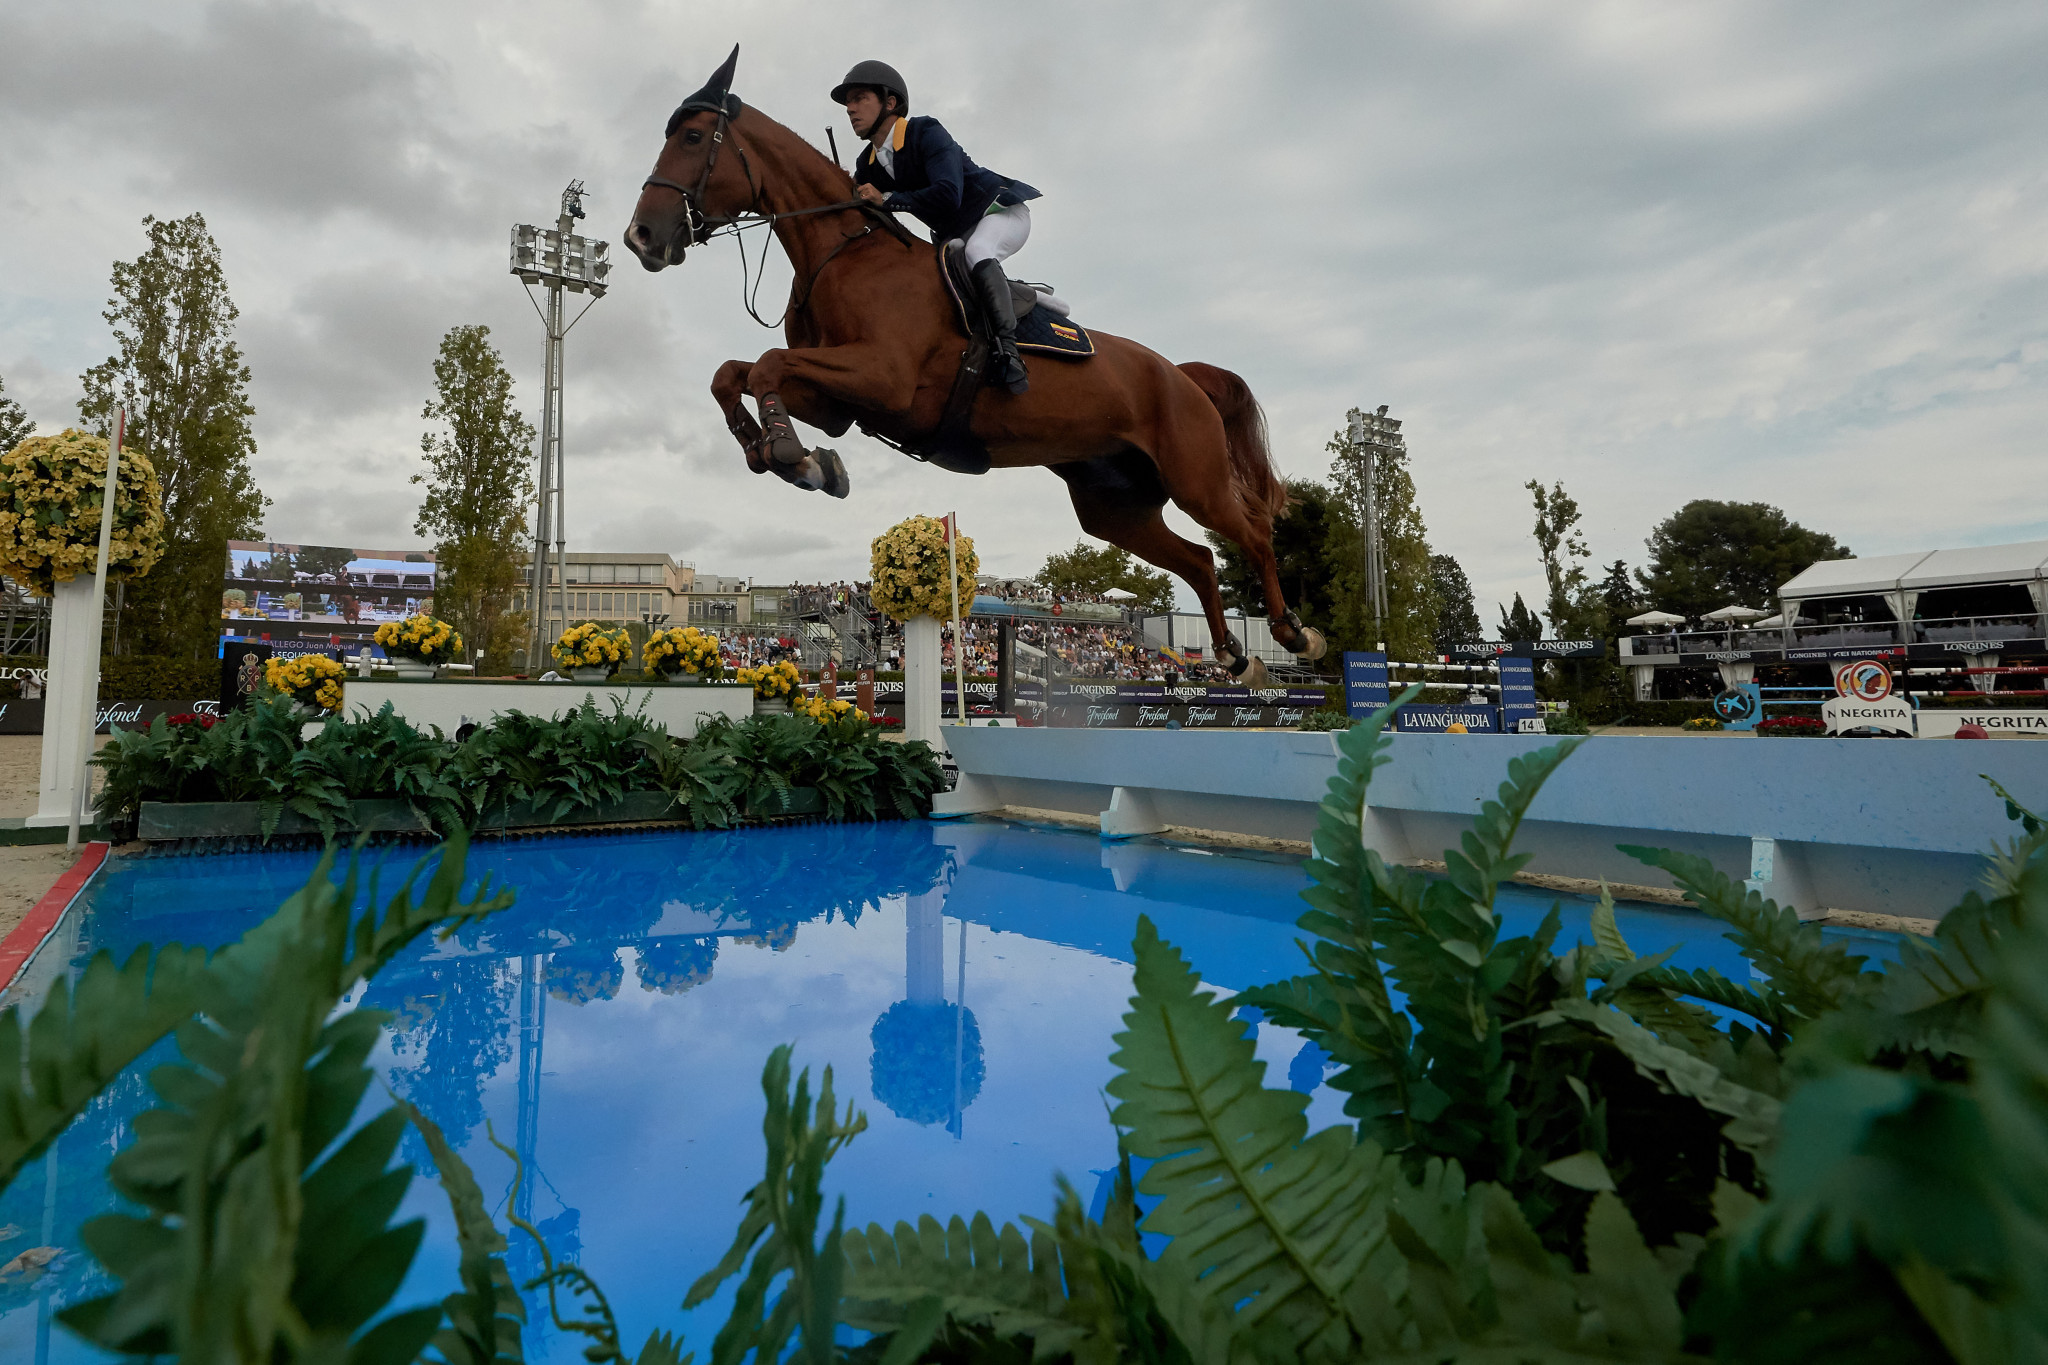 The FEI Board approved rules for the 2020 FEI Jumping Nations Cup ©Getty Images